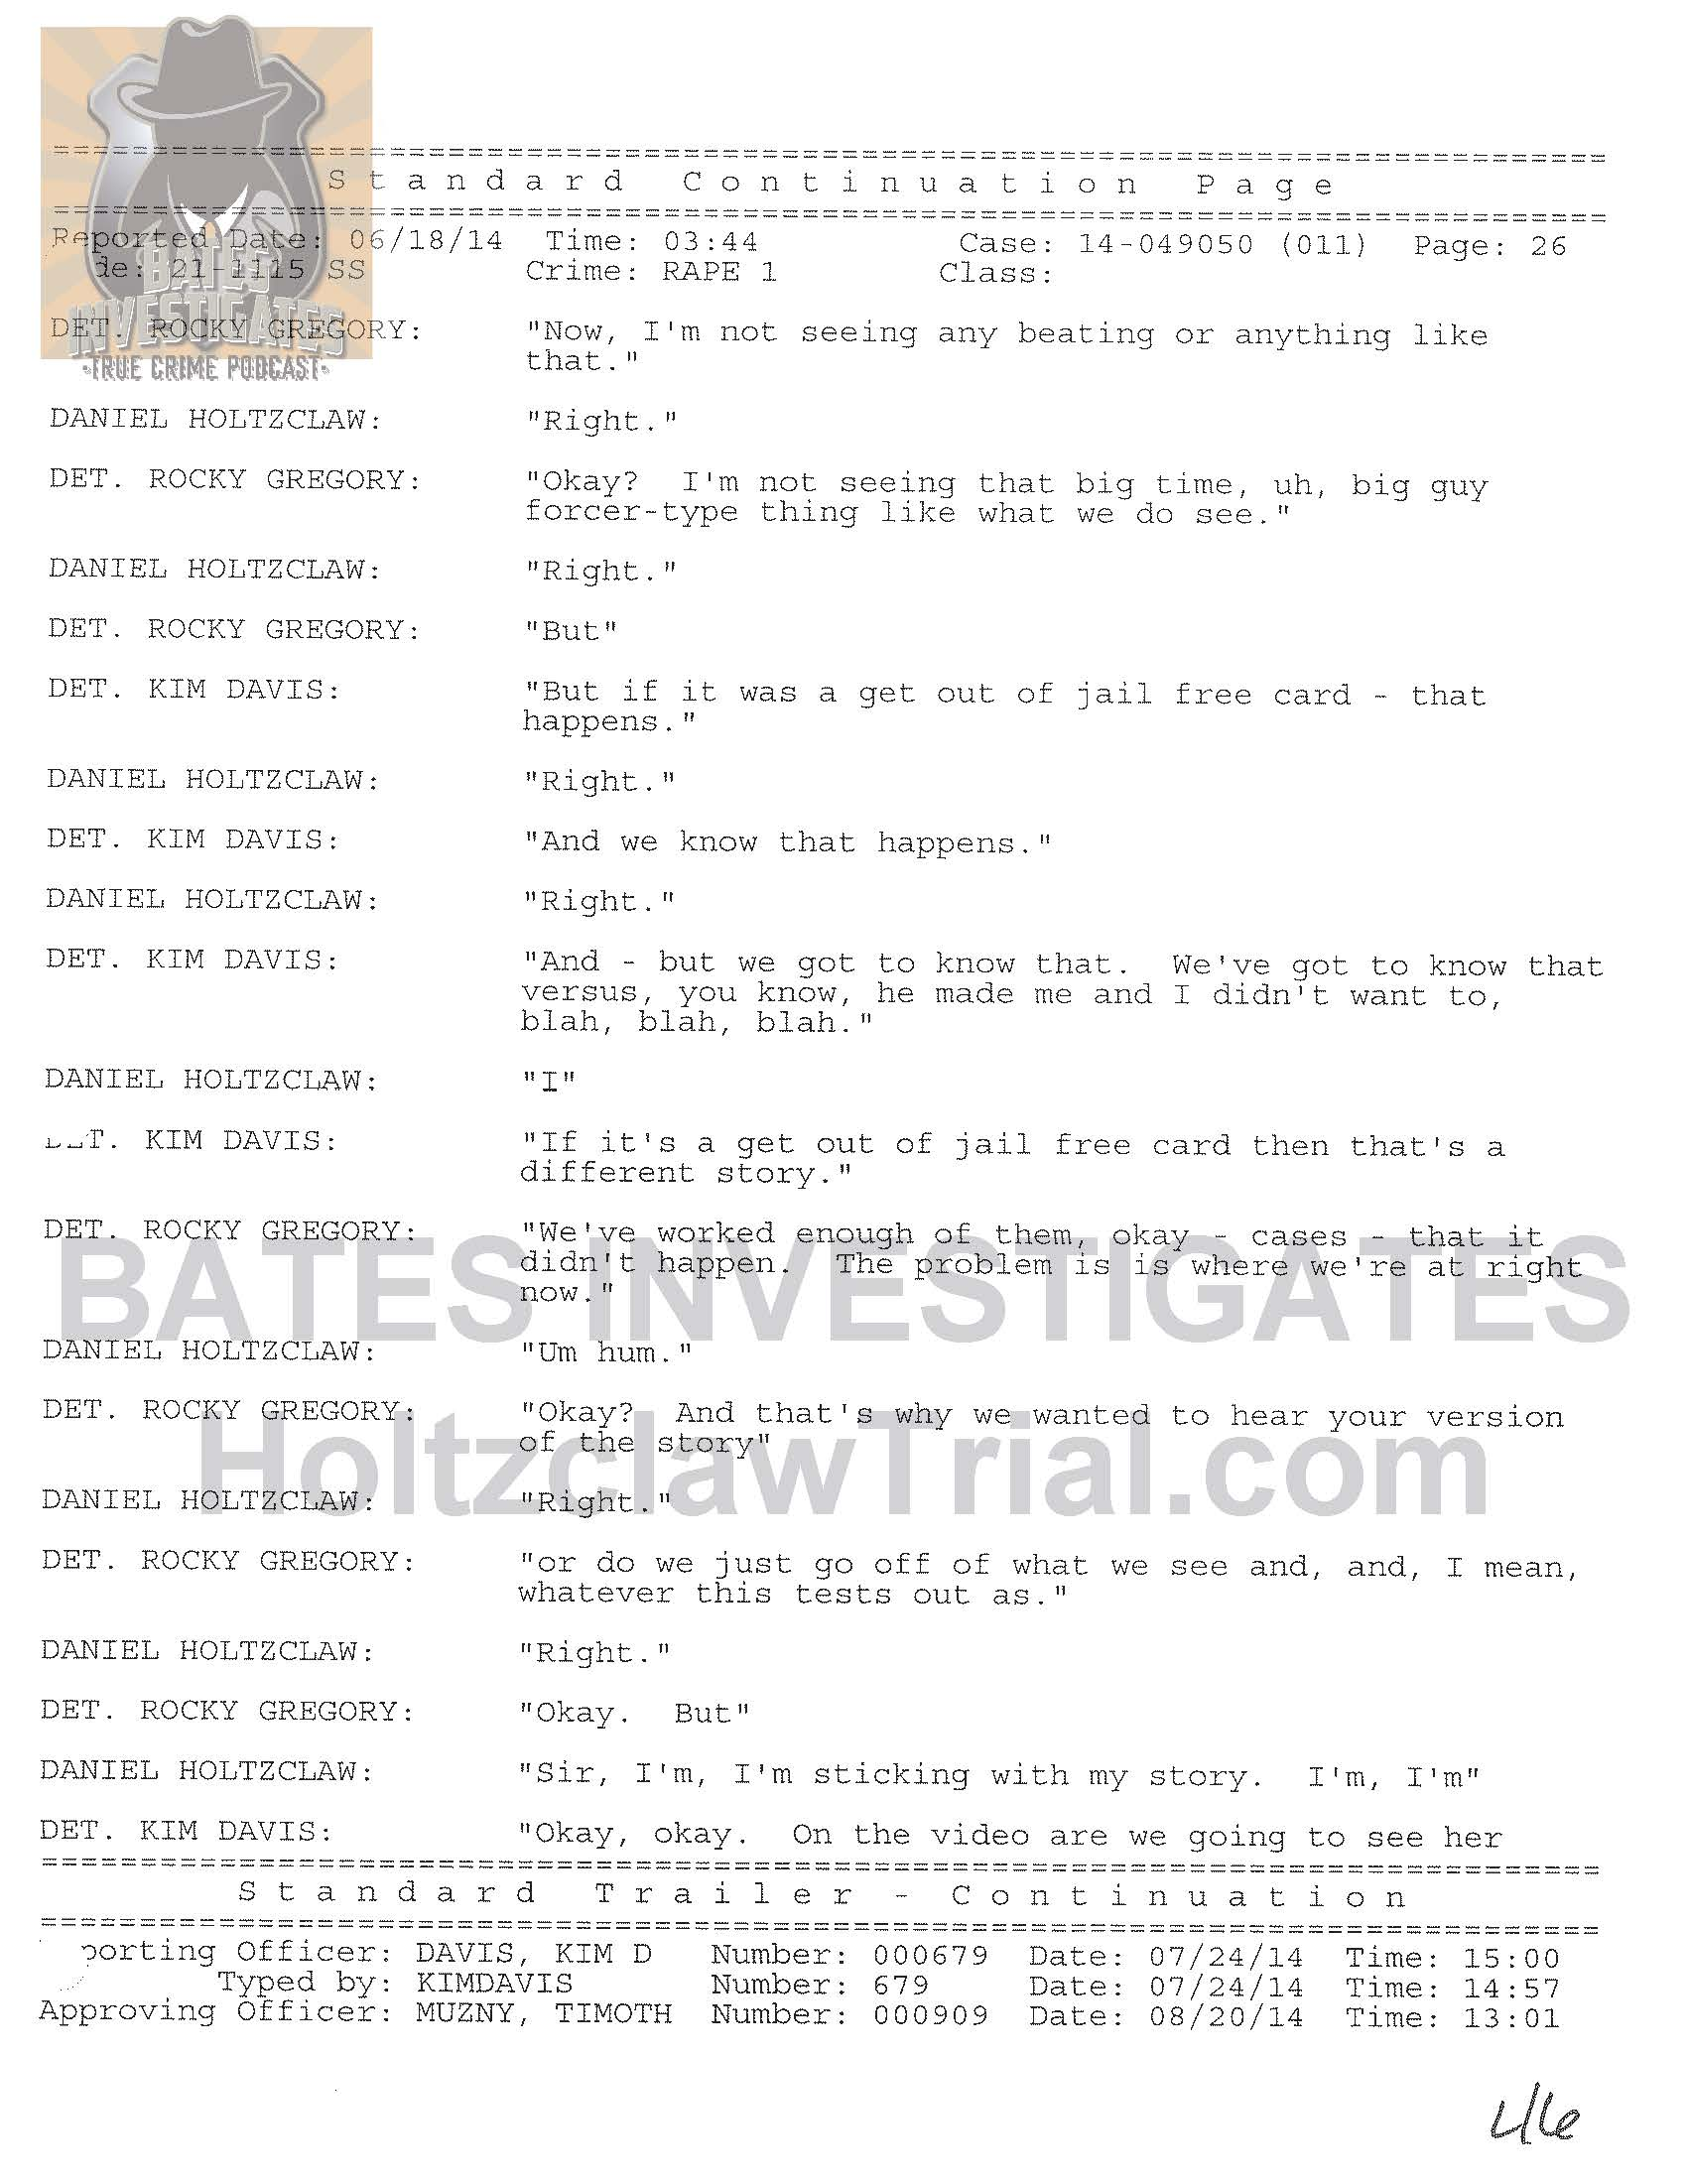 Holtzclaw Interrogation Transcript - Ep02 Redacted_Page_26.jpg